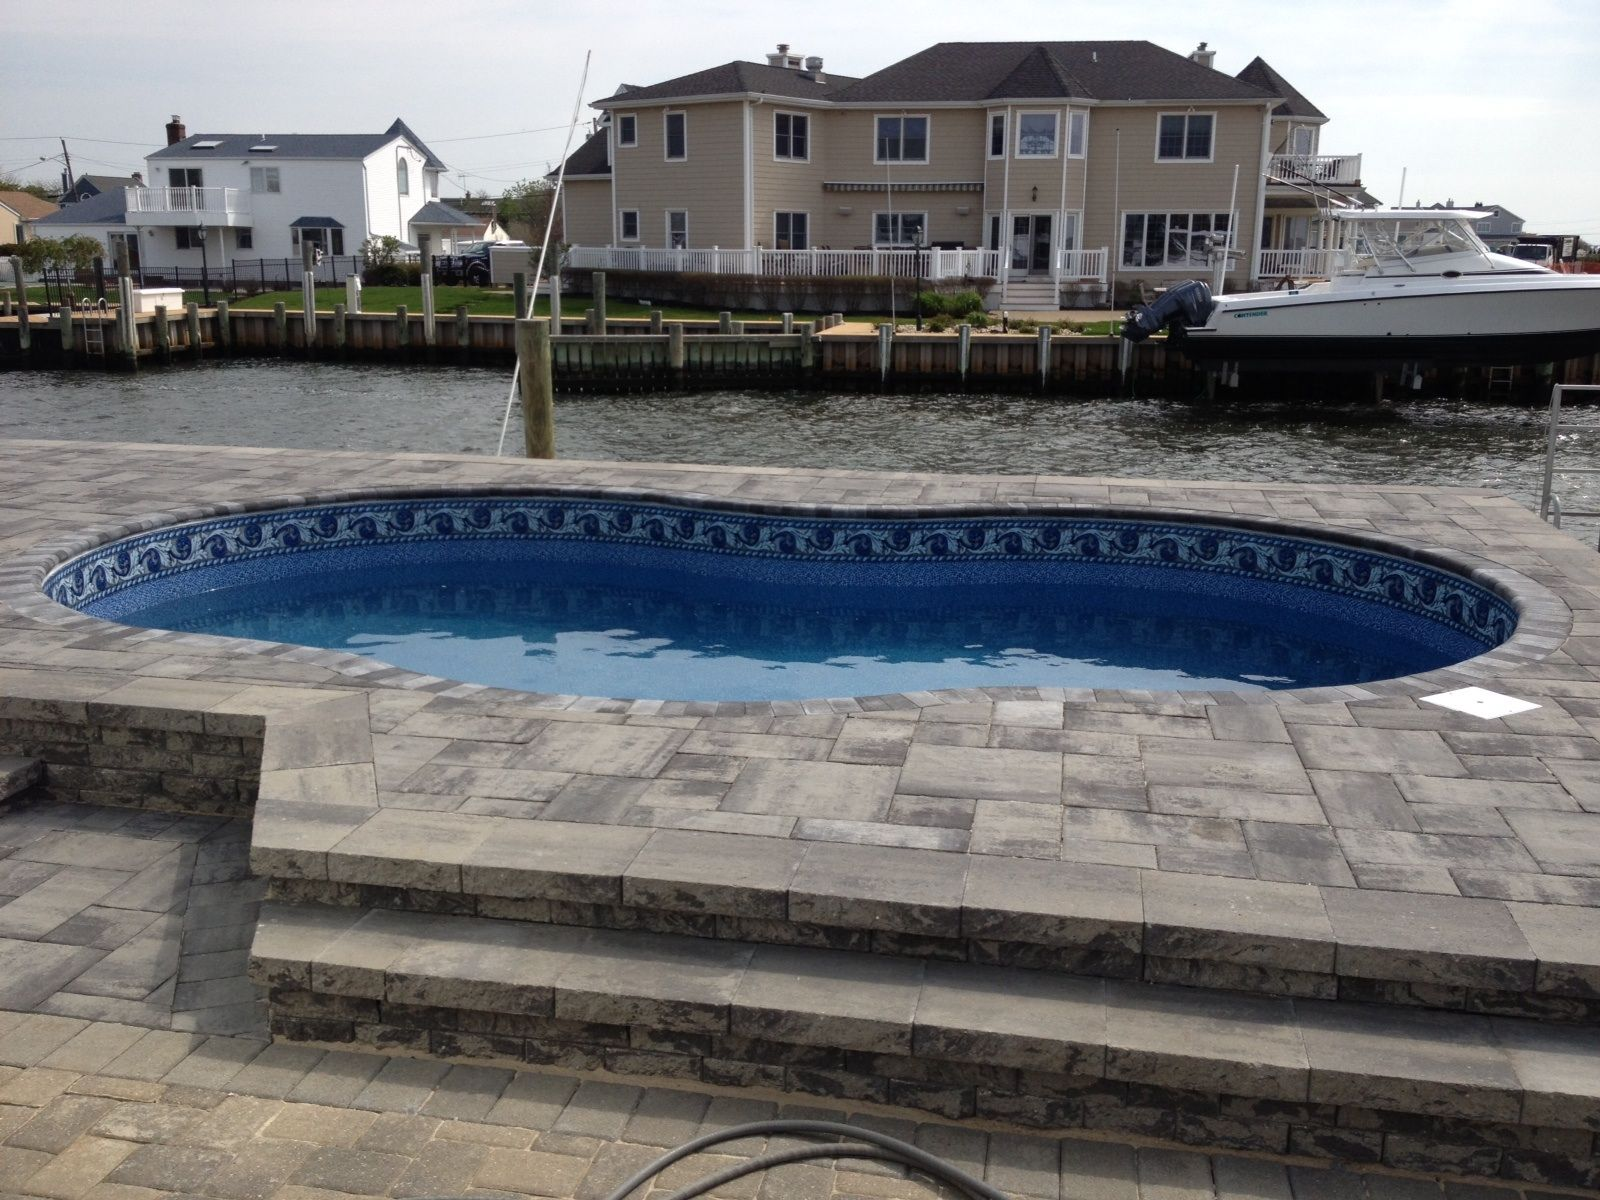 Semi Inground Pool Ideas wondering what to do after removing semi inground pool We Sell High Quality Semi Inground Pools In Suffolk And Nassau Counties Long Island Which Are Designed To Go Semi Inground And Have A Lifetime Warranty In